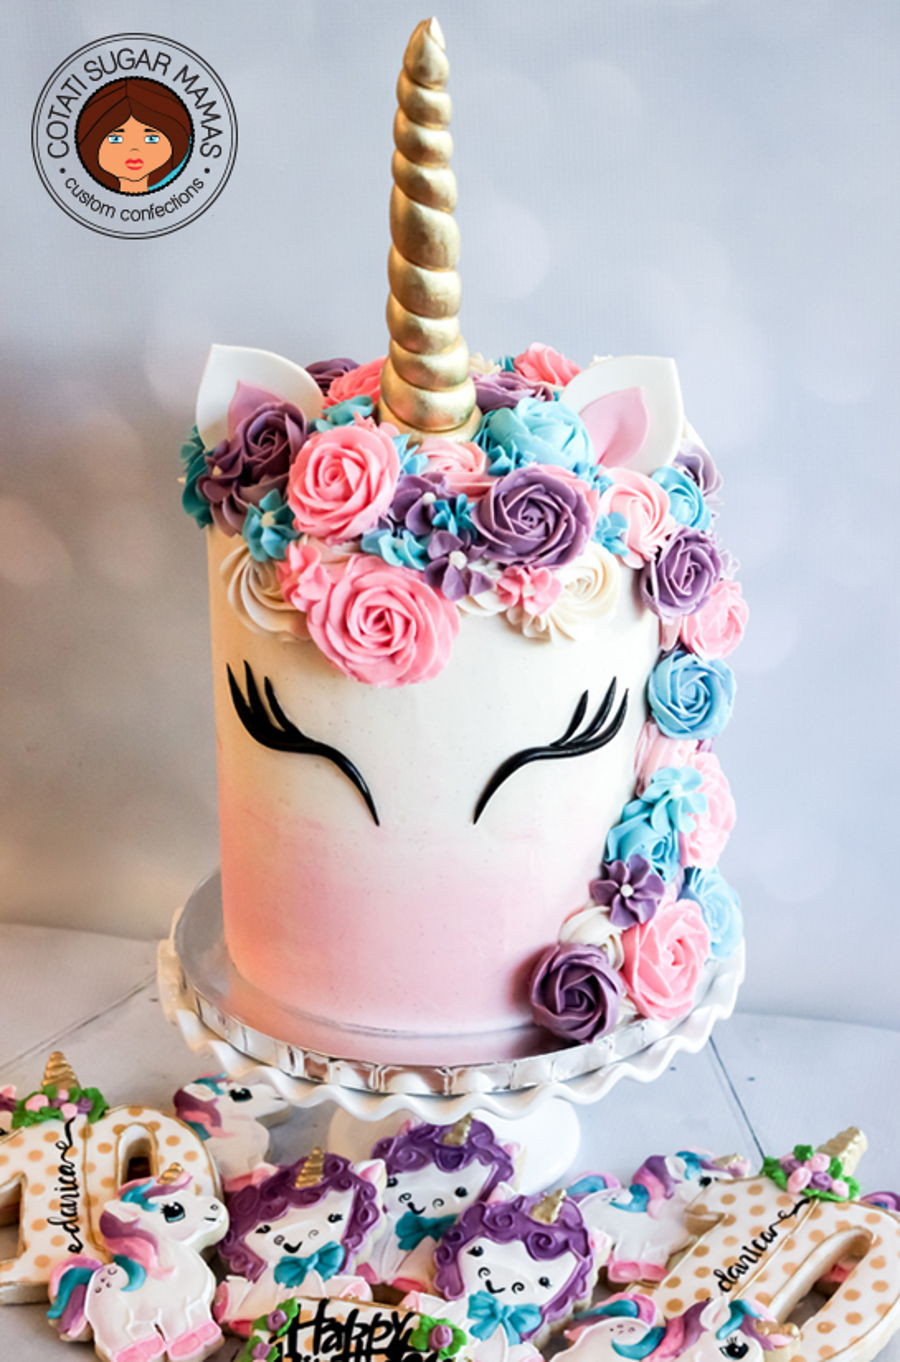 Best ideas about Unicorn Birthday Cake . Save or Pin Unicorn Themed Cake CakeCentral Now.